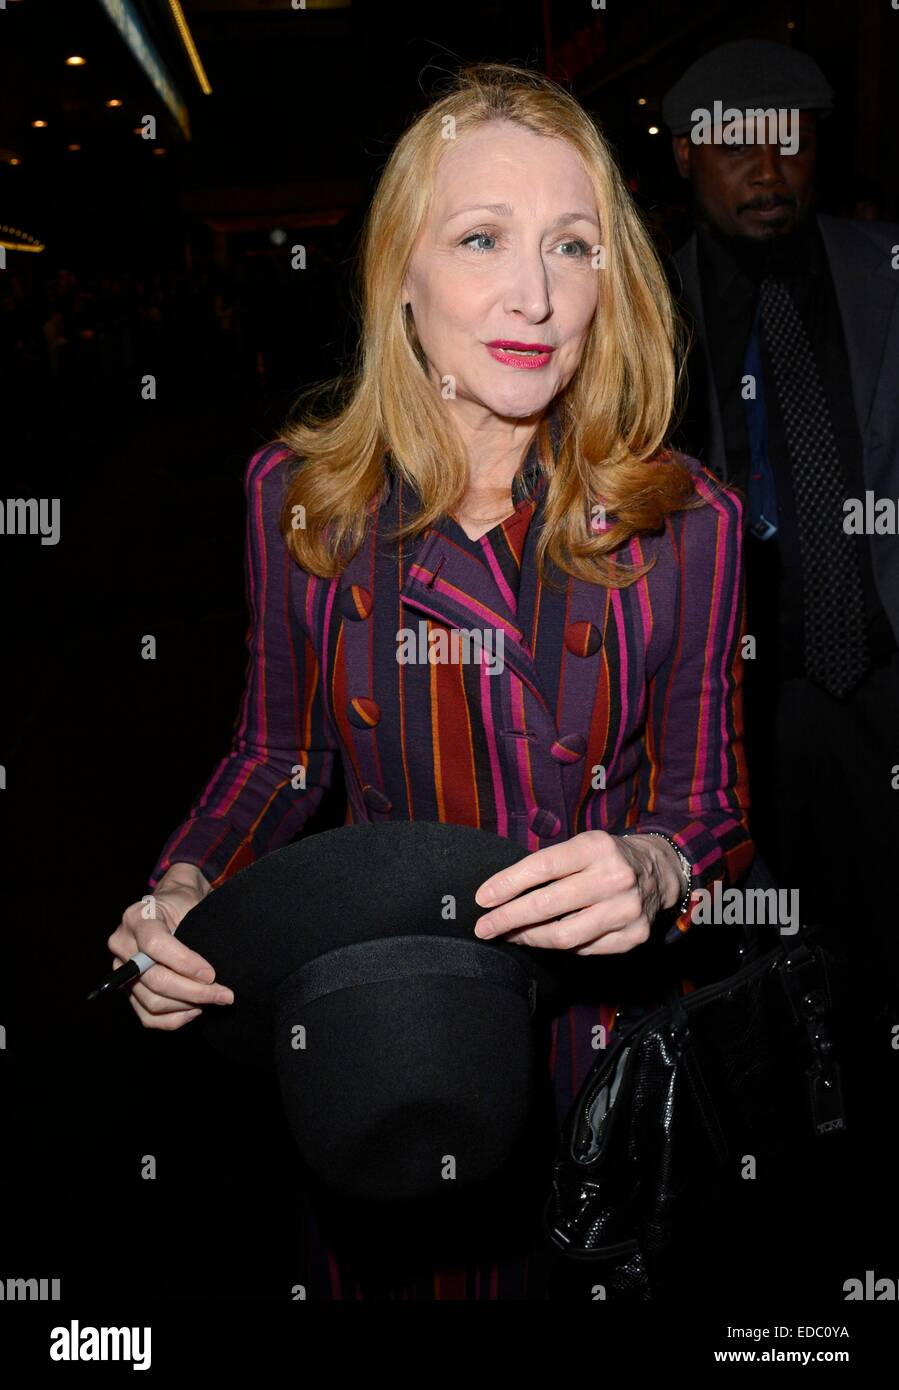 Patricia Clarkson out and about for Celebrity Candids - SUN, , New York, NY January 4, 2015. Photo By: Derek Storm/Everett - Stock Image